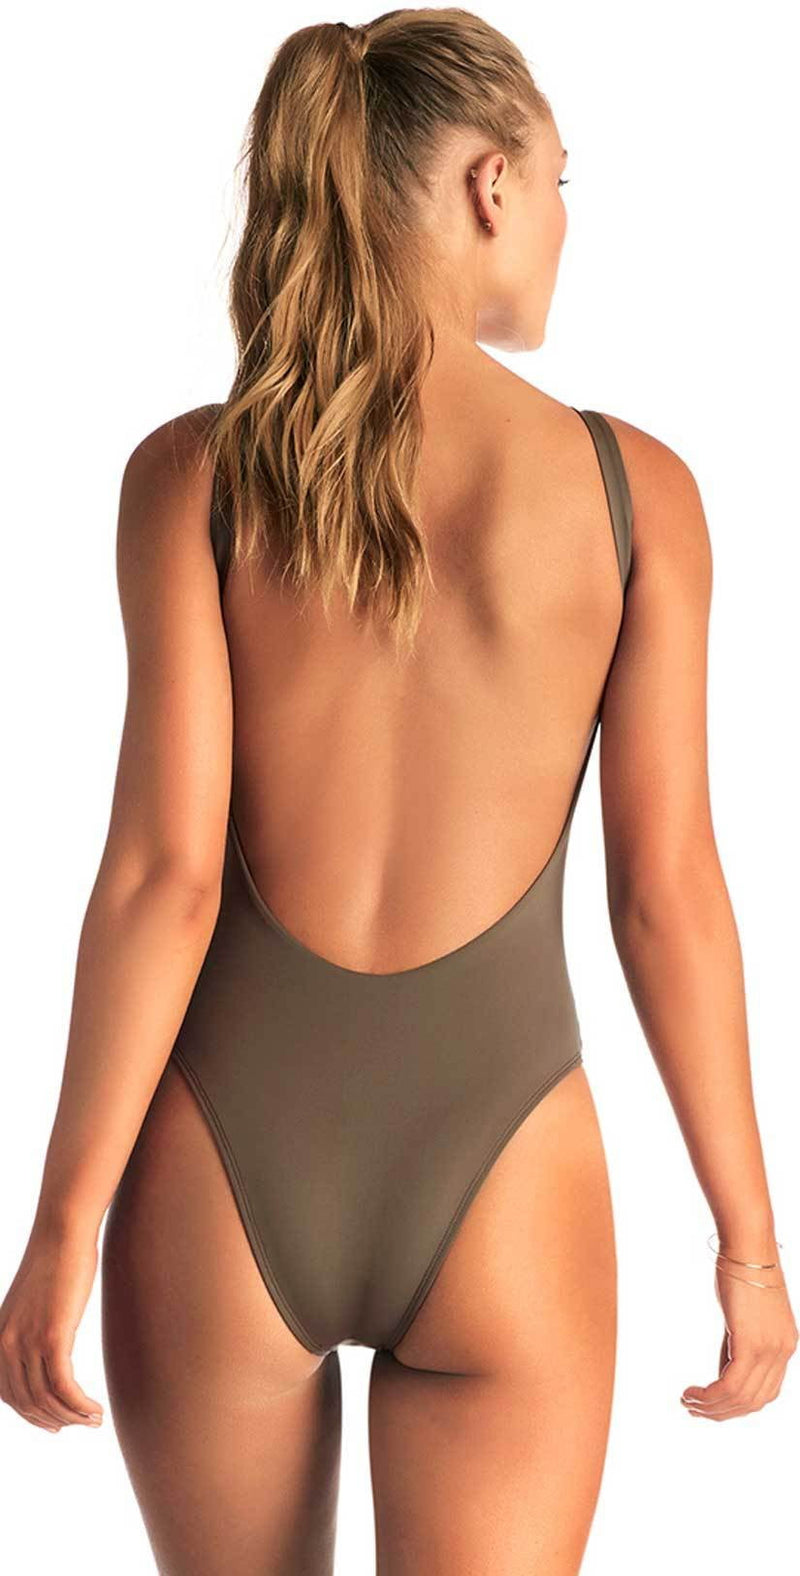 Vitamin A Leah One Piece Bodysuit in Wildwood 76M WIL: